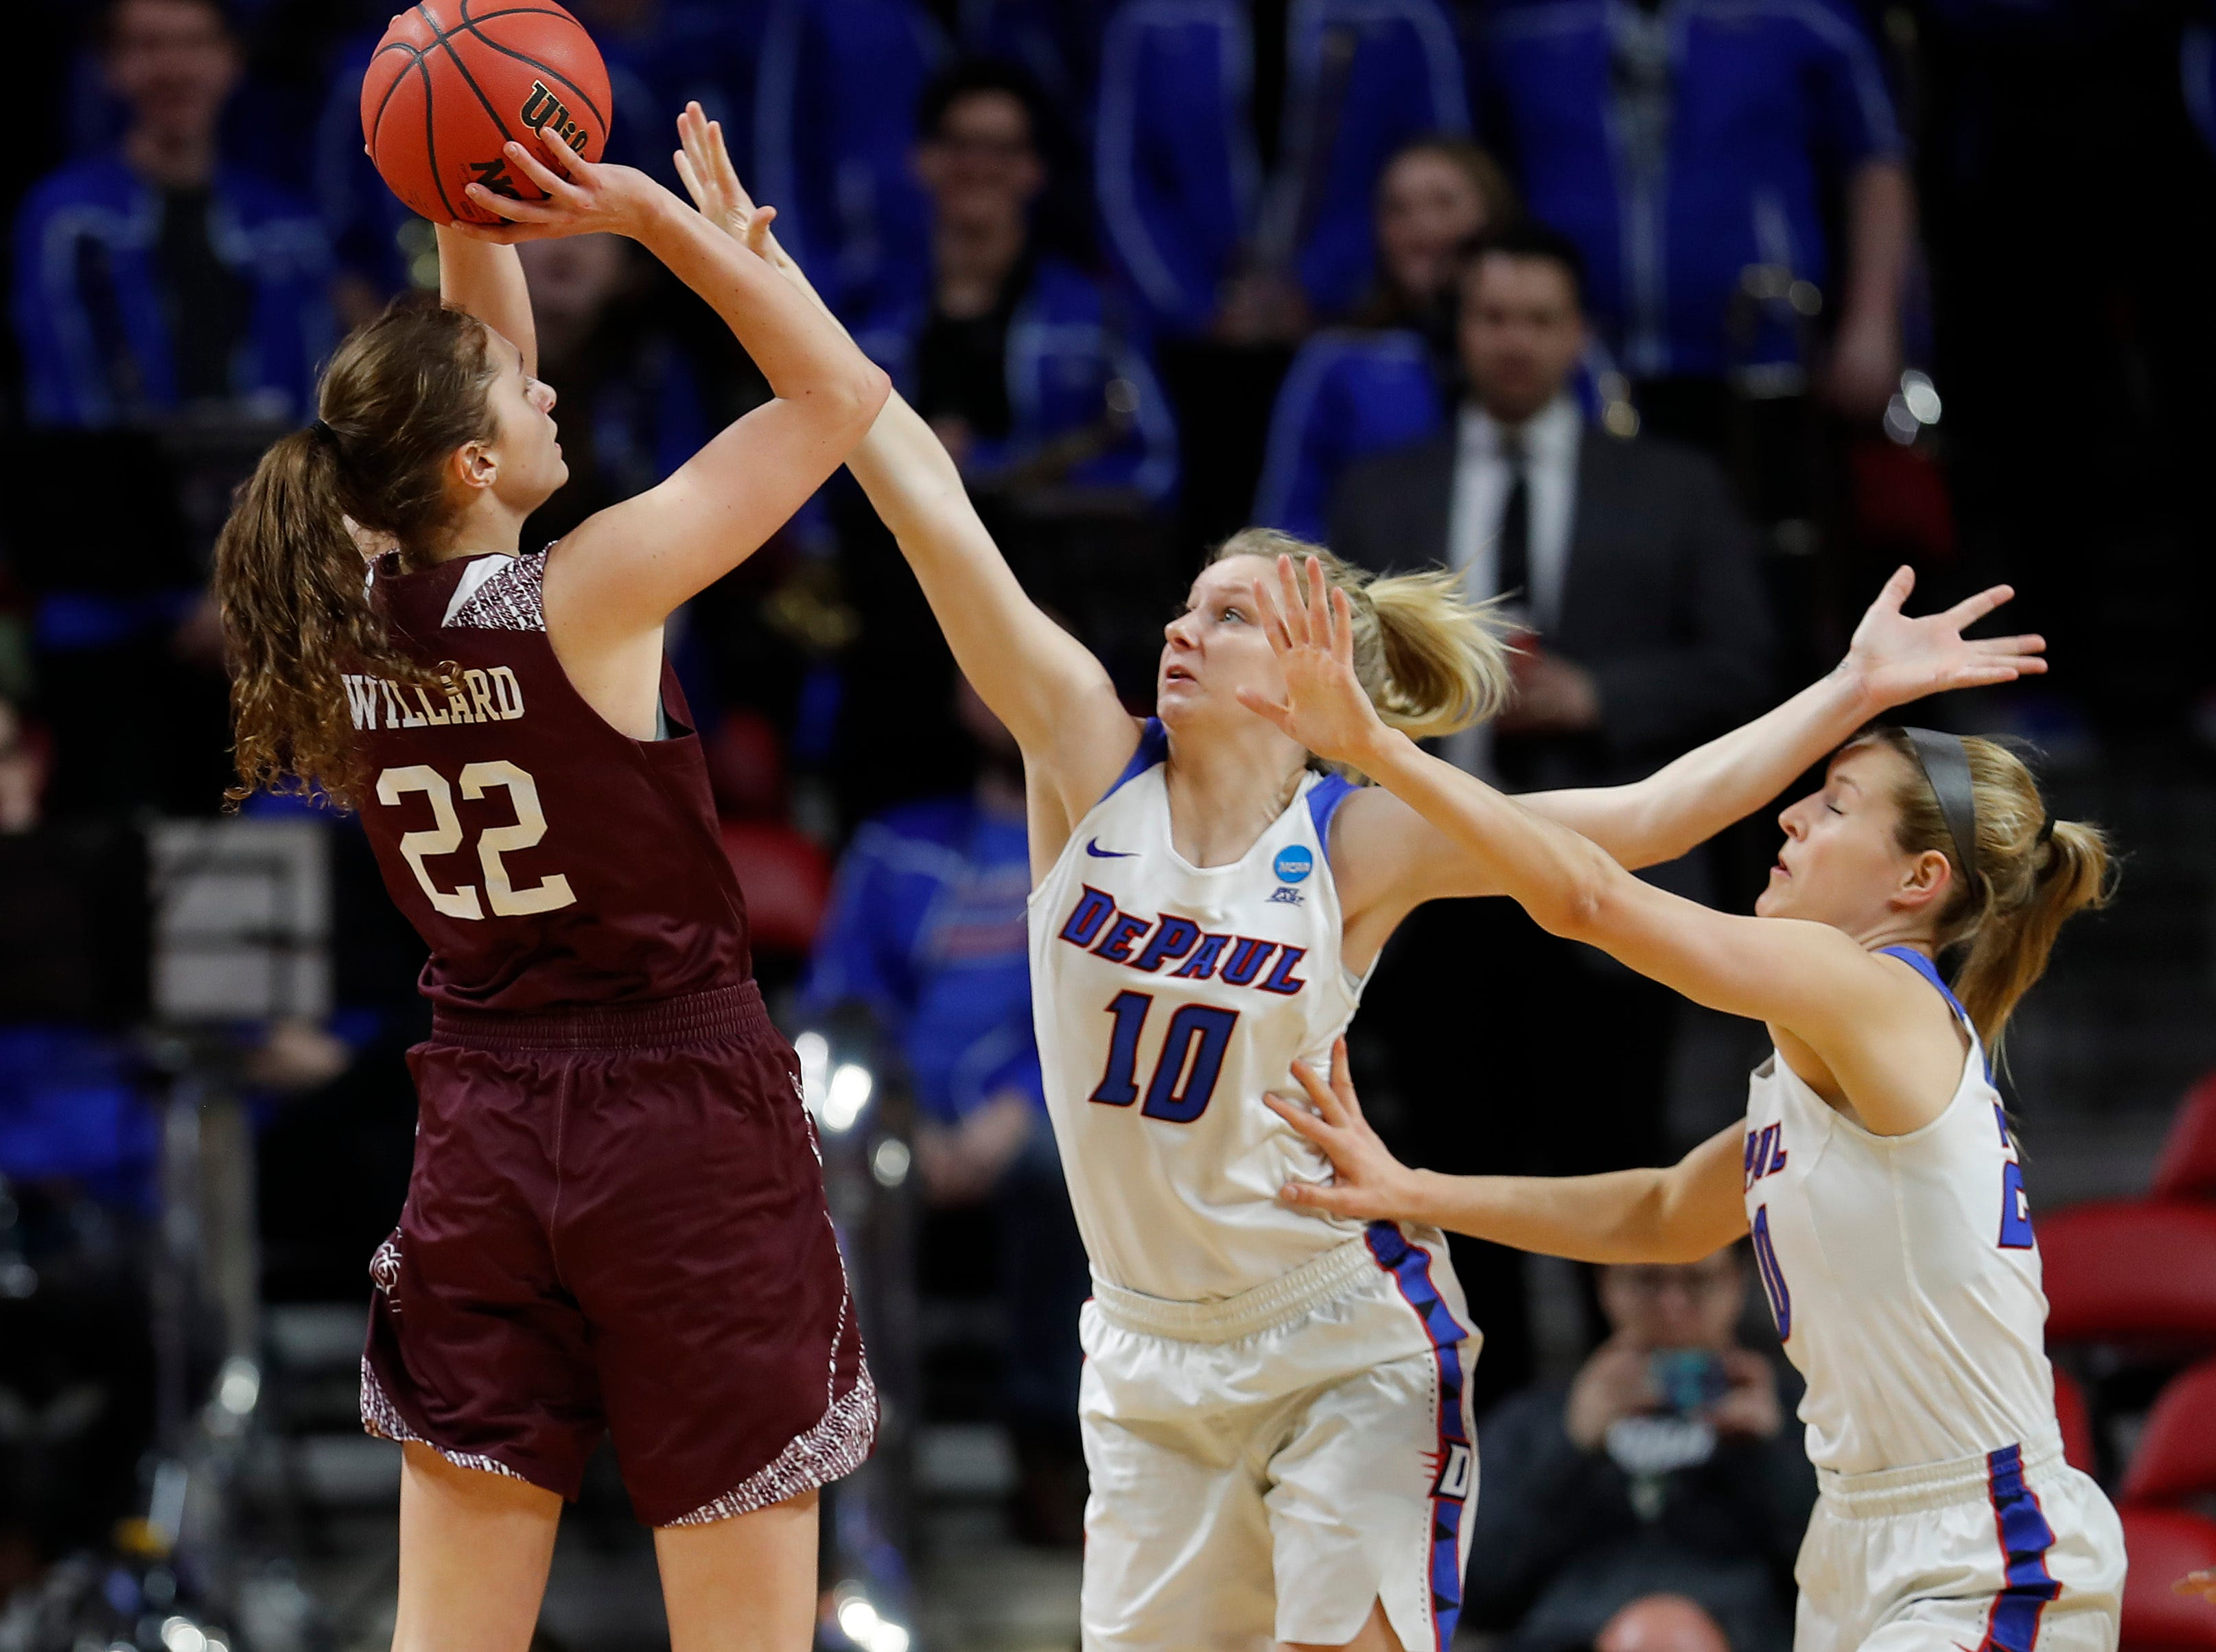 Missouri State guard Alexa Willard, left, drops back for a shot as DePaul guards Lexi Held, center, and Kelly Campbell, right, defend during the first half of a first round women's college basketball game in the NCAA Tournament, Saturday, March 23, 2019, in Ames, Iowa.